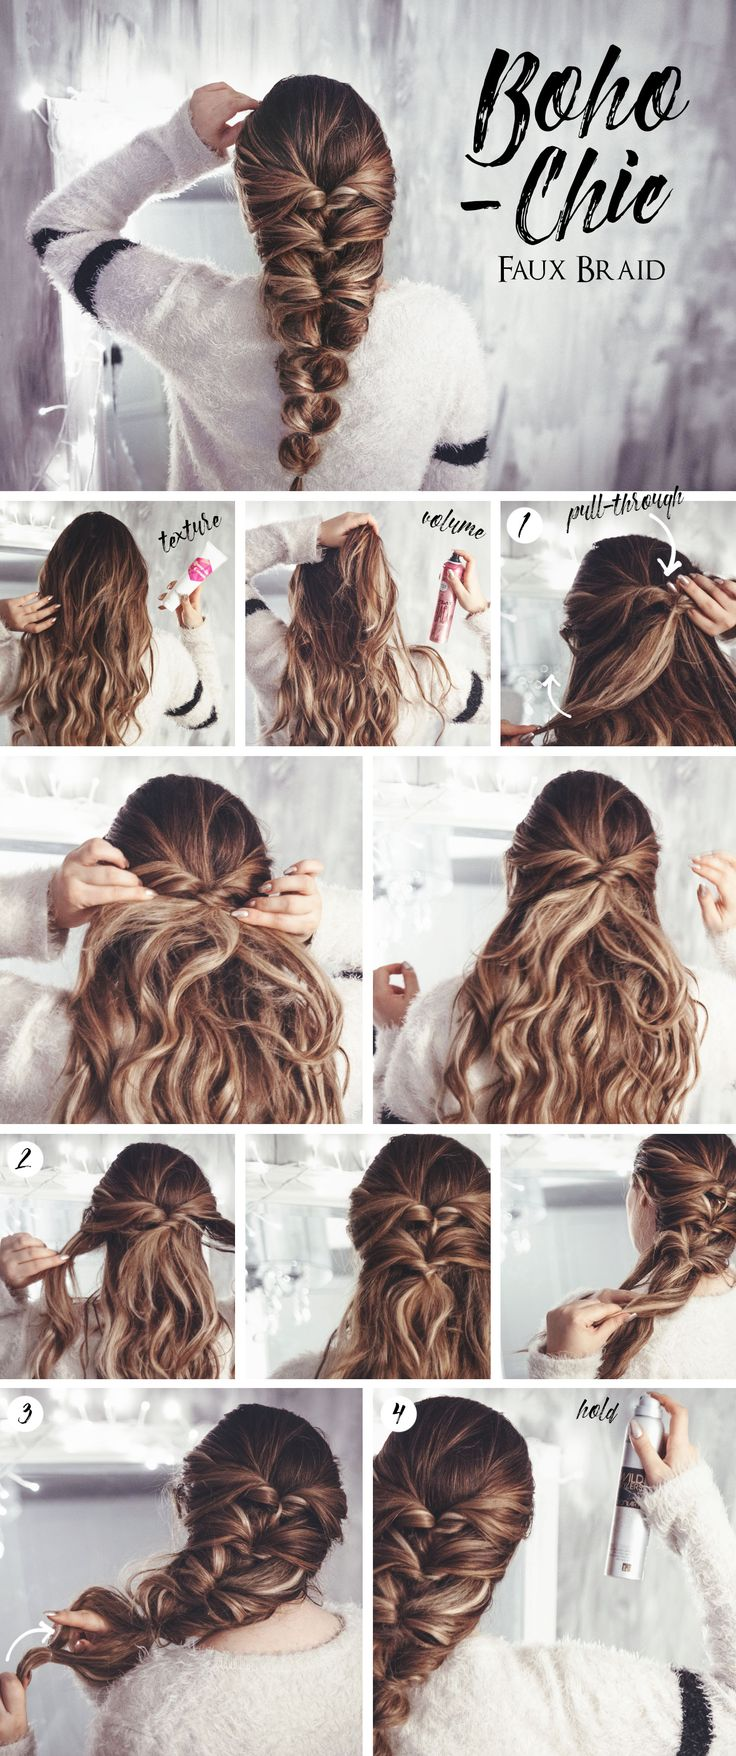 This bohemian-chic faux braid takes almost no time at all and is so easy to do! ...